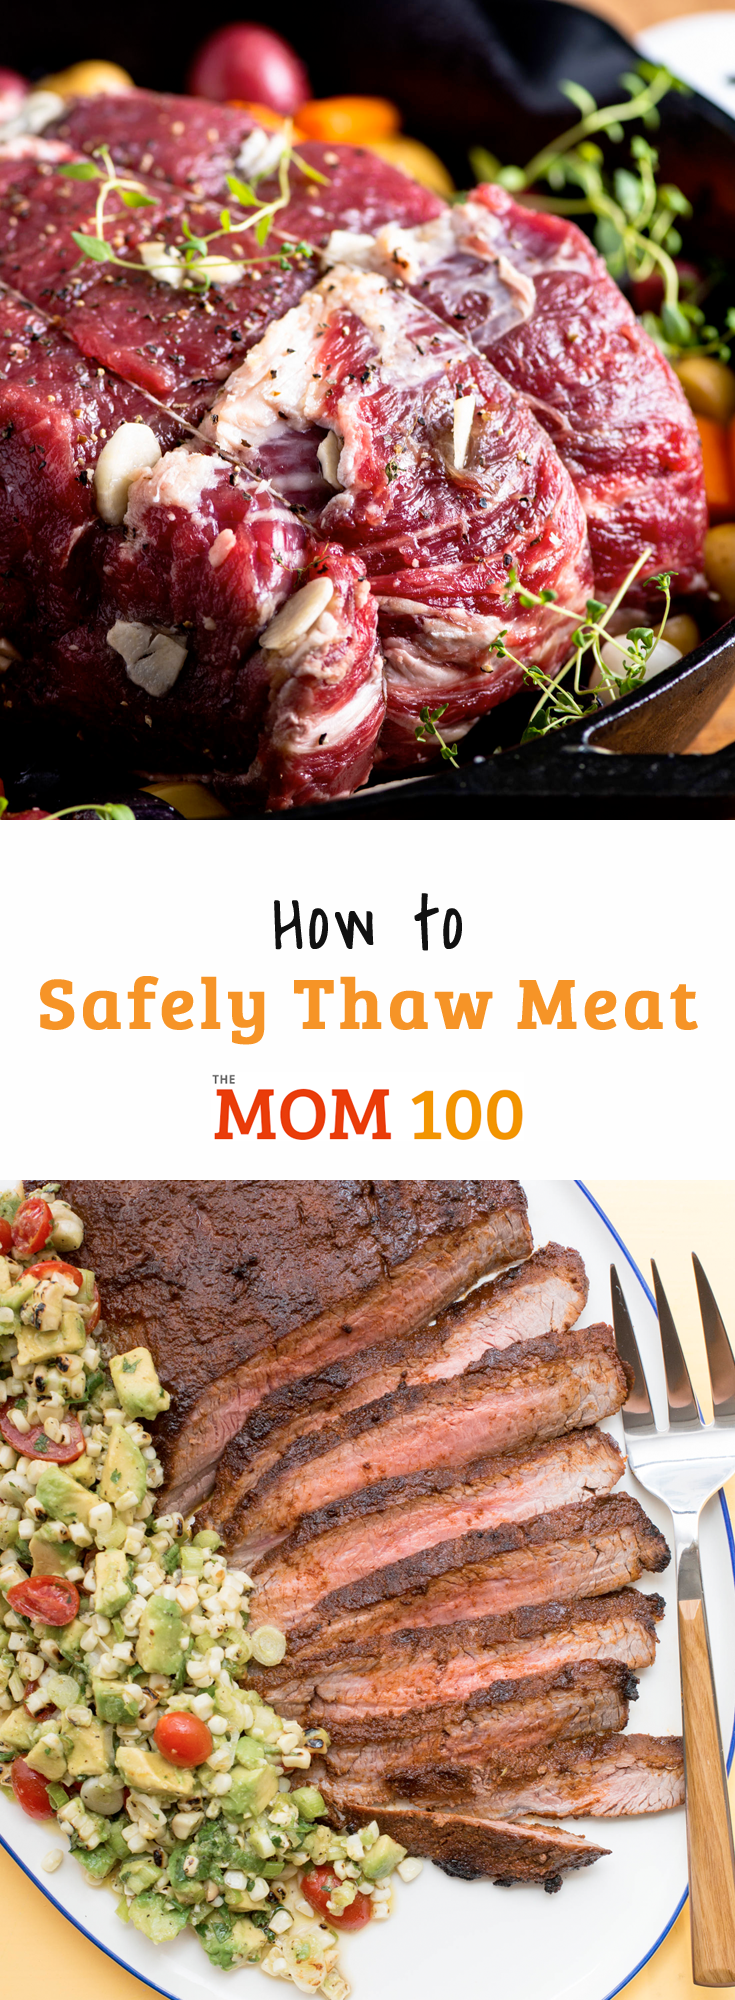 How to Safely Thaw Meat: All the methods you need to know for defrosting frozen meat safely, from chops to ground beef to roasts.